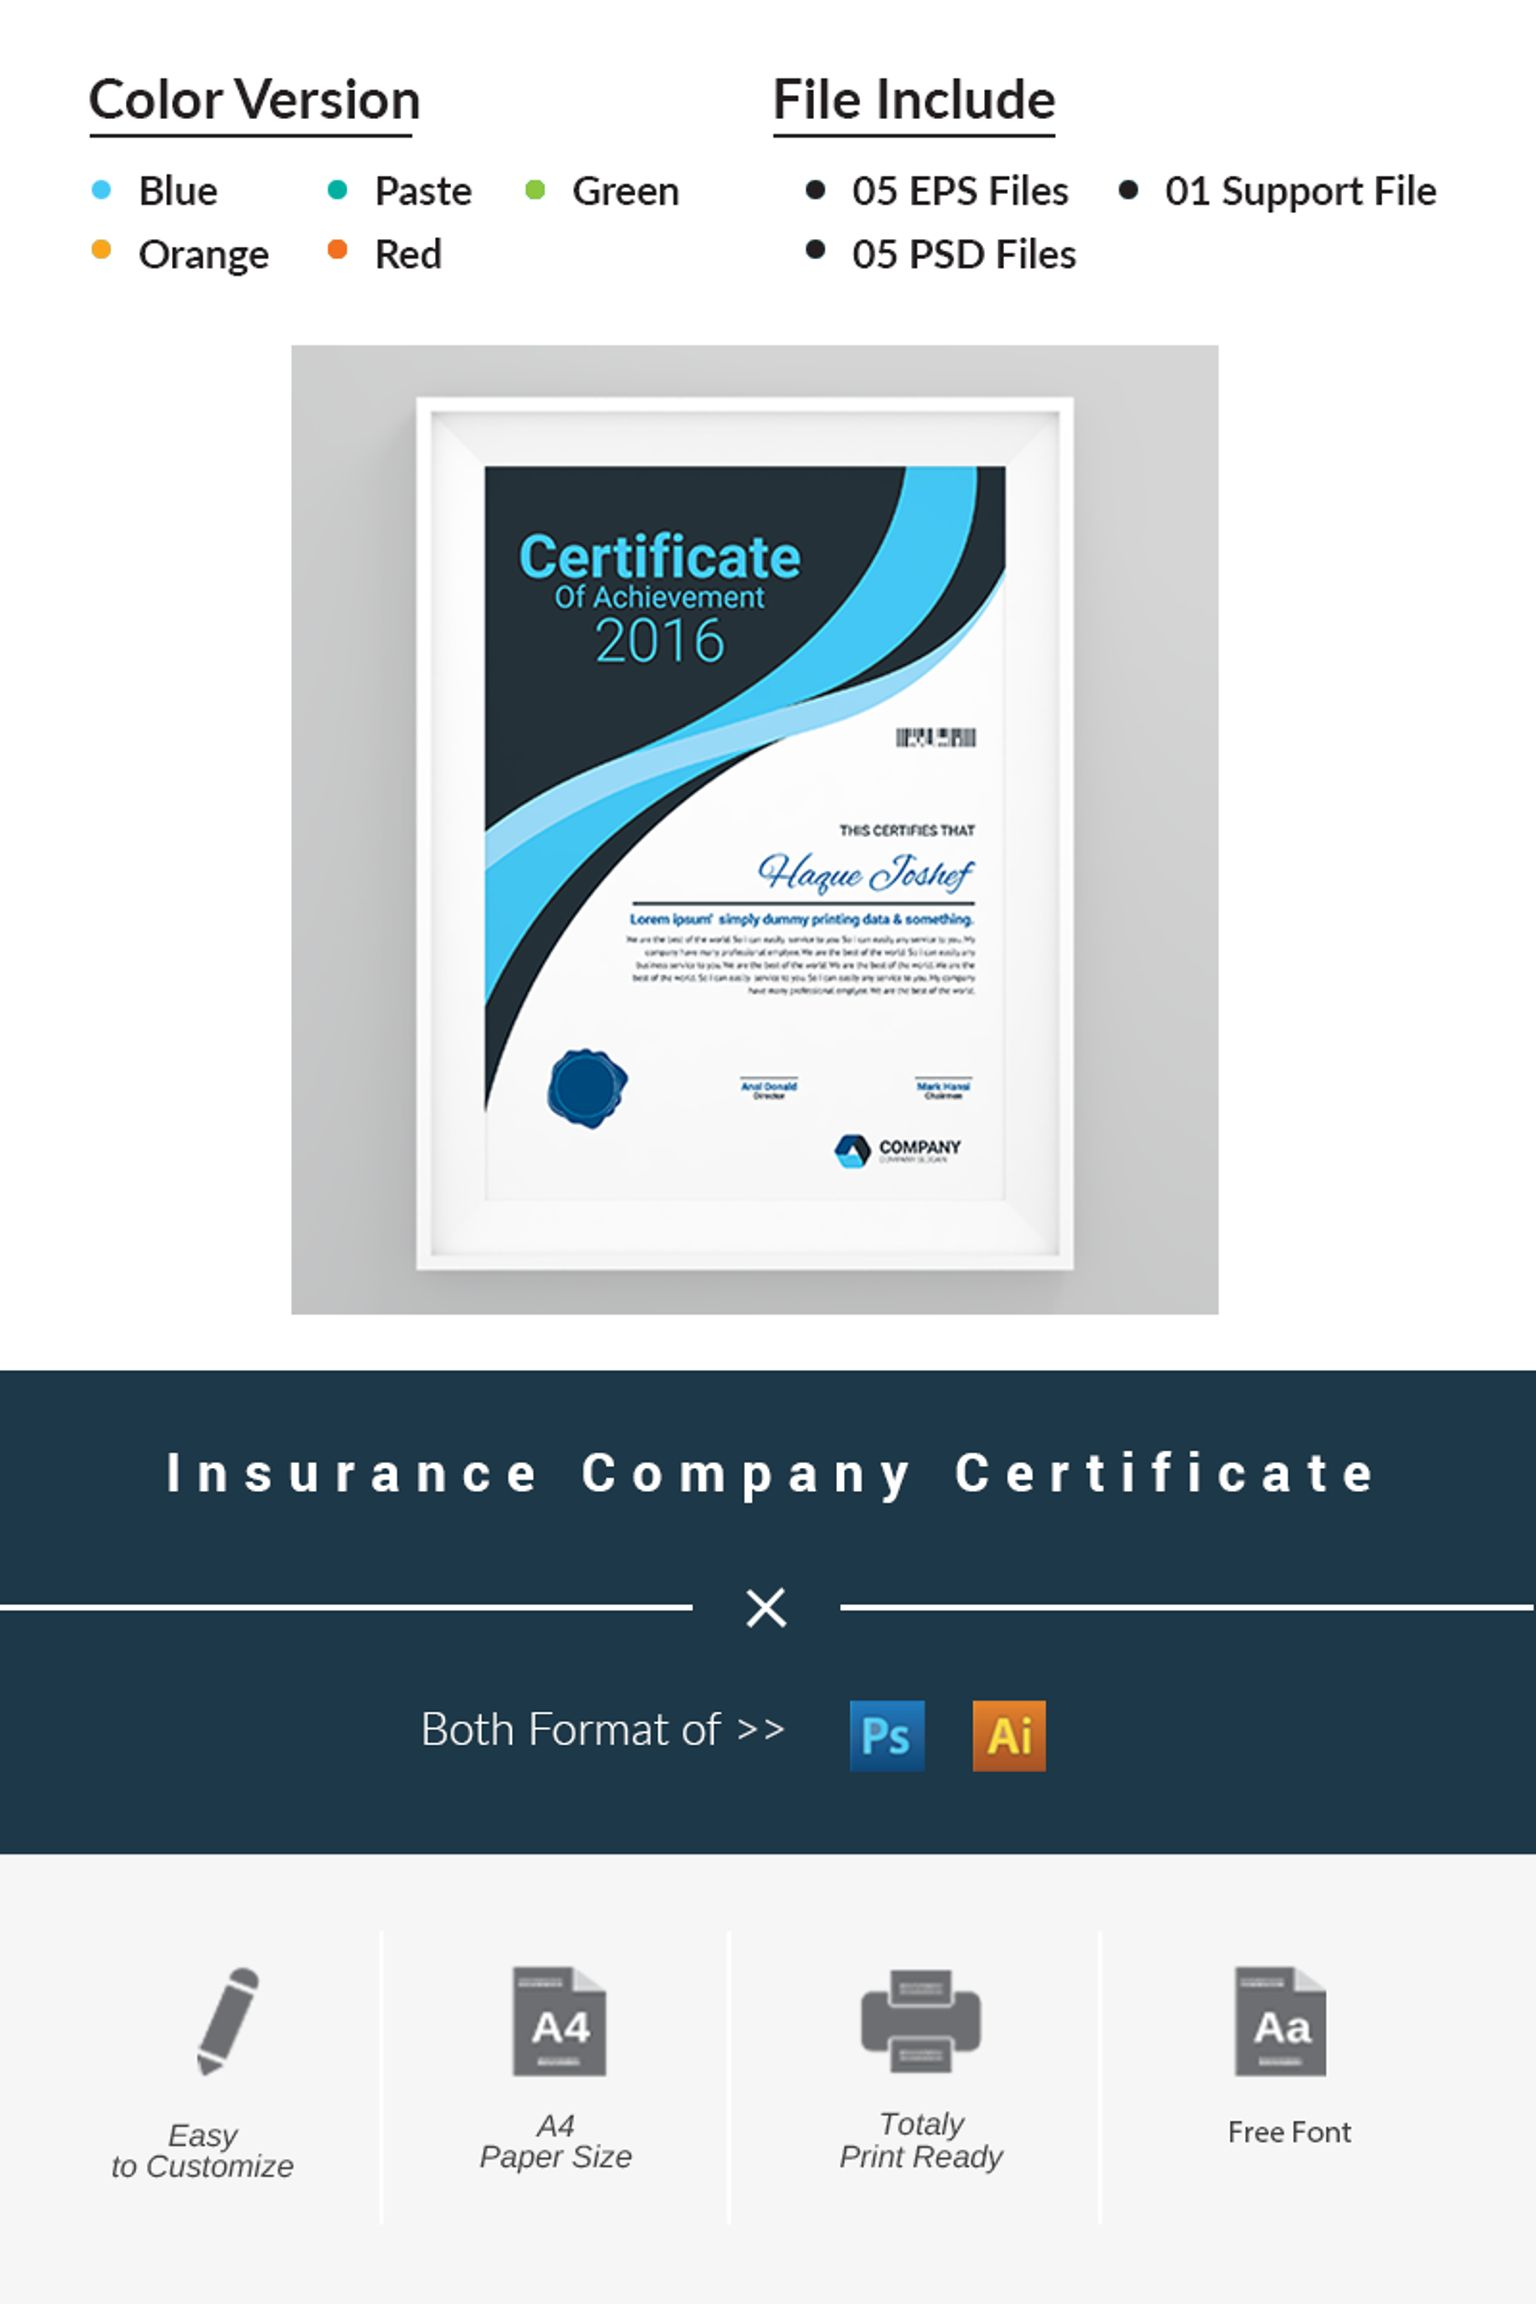 Insurance company certificate template 66464 insurance company certificate template big screenshot yadclub Image collections